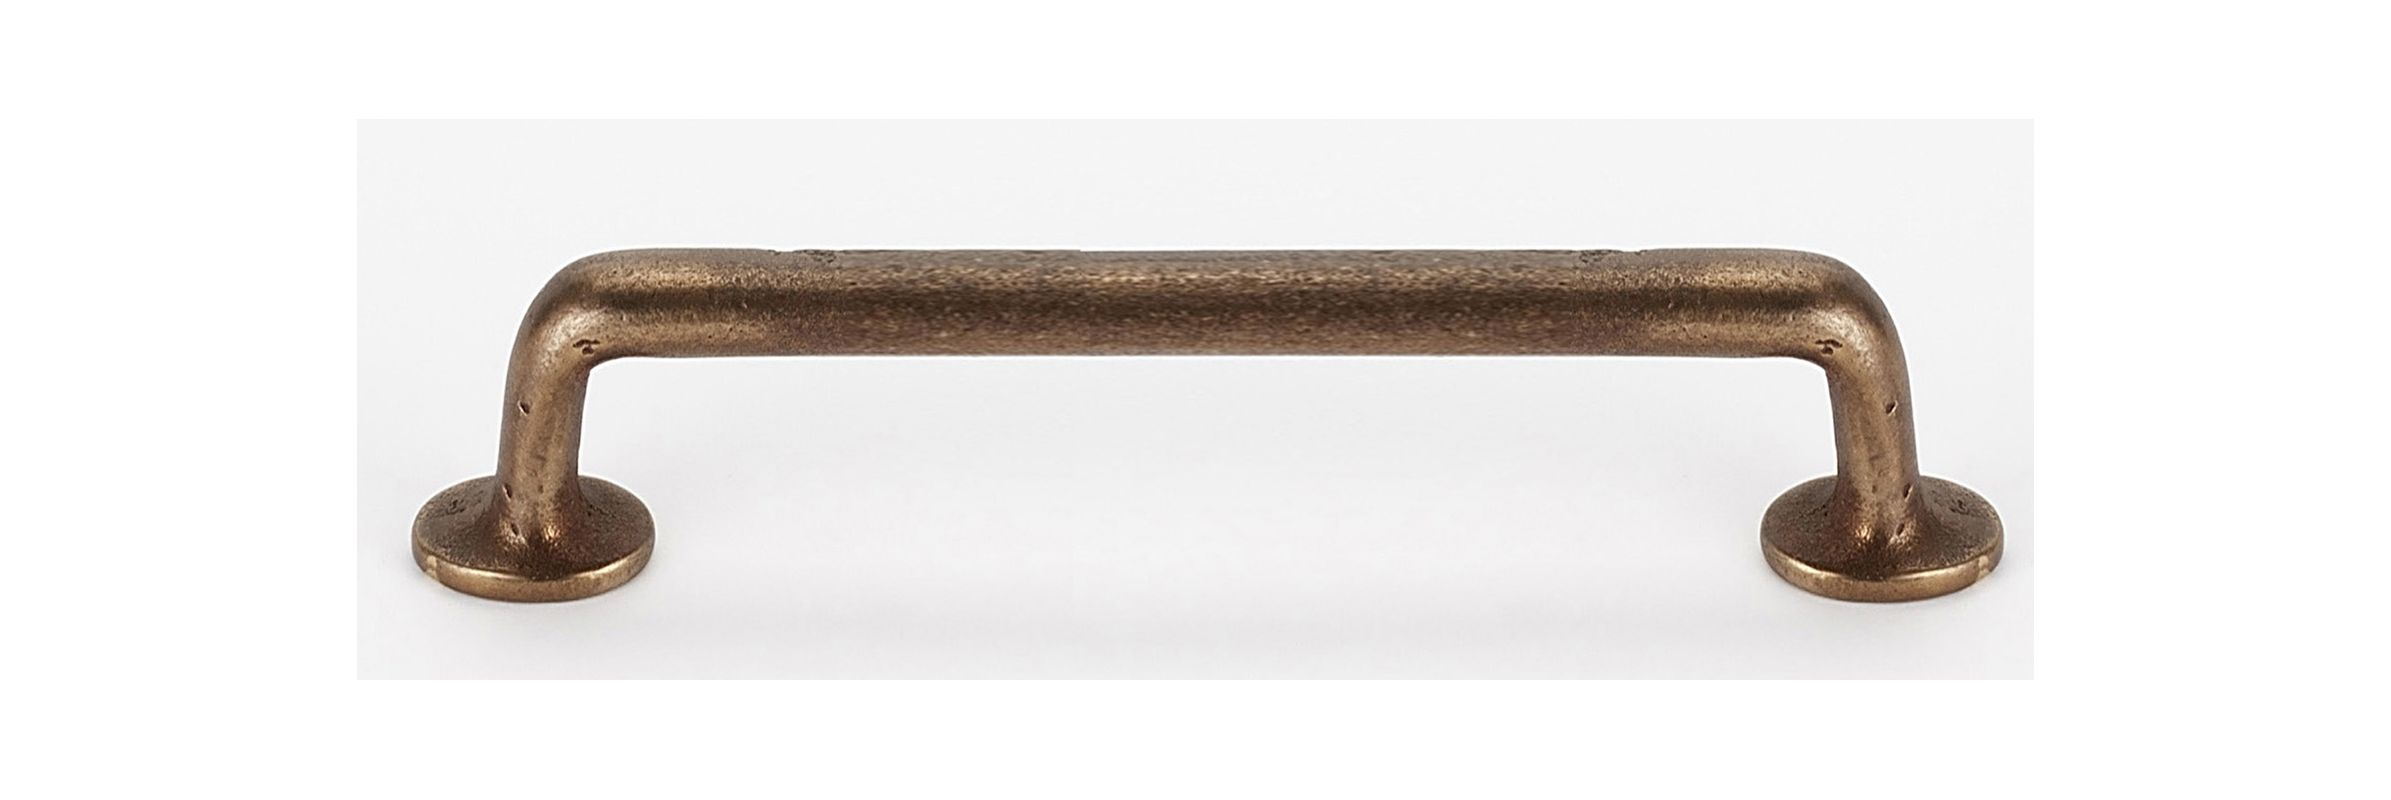 Alno A1408 6 Rstbrz Rust Bronze Sierra 6 Inch Center To Center Handle Cabinet Pull